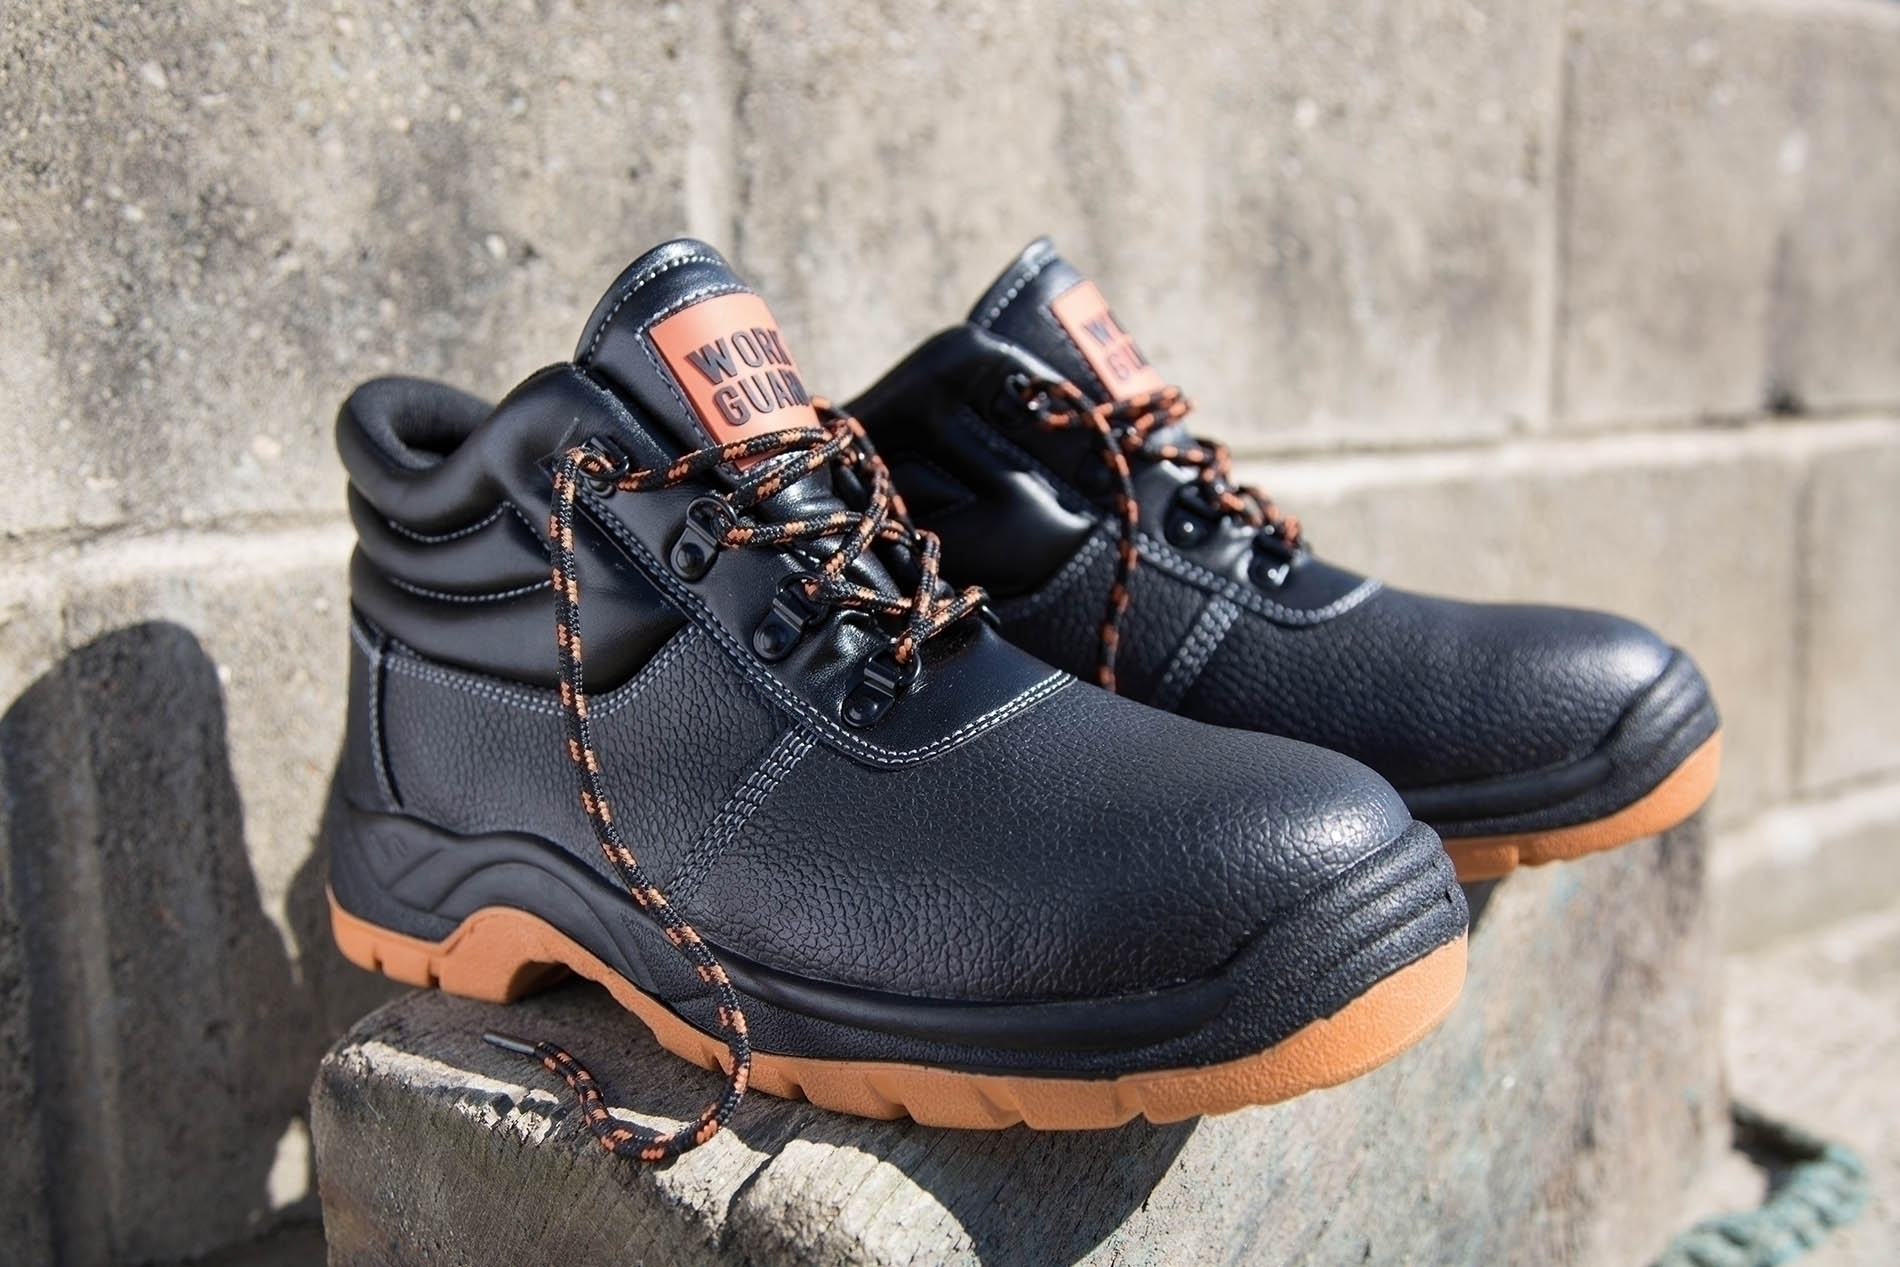 Chaussure Pro Securite Timberland Eagle Timberland Securite Chaussure Pro qHEBwxUZp